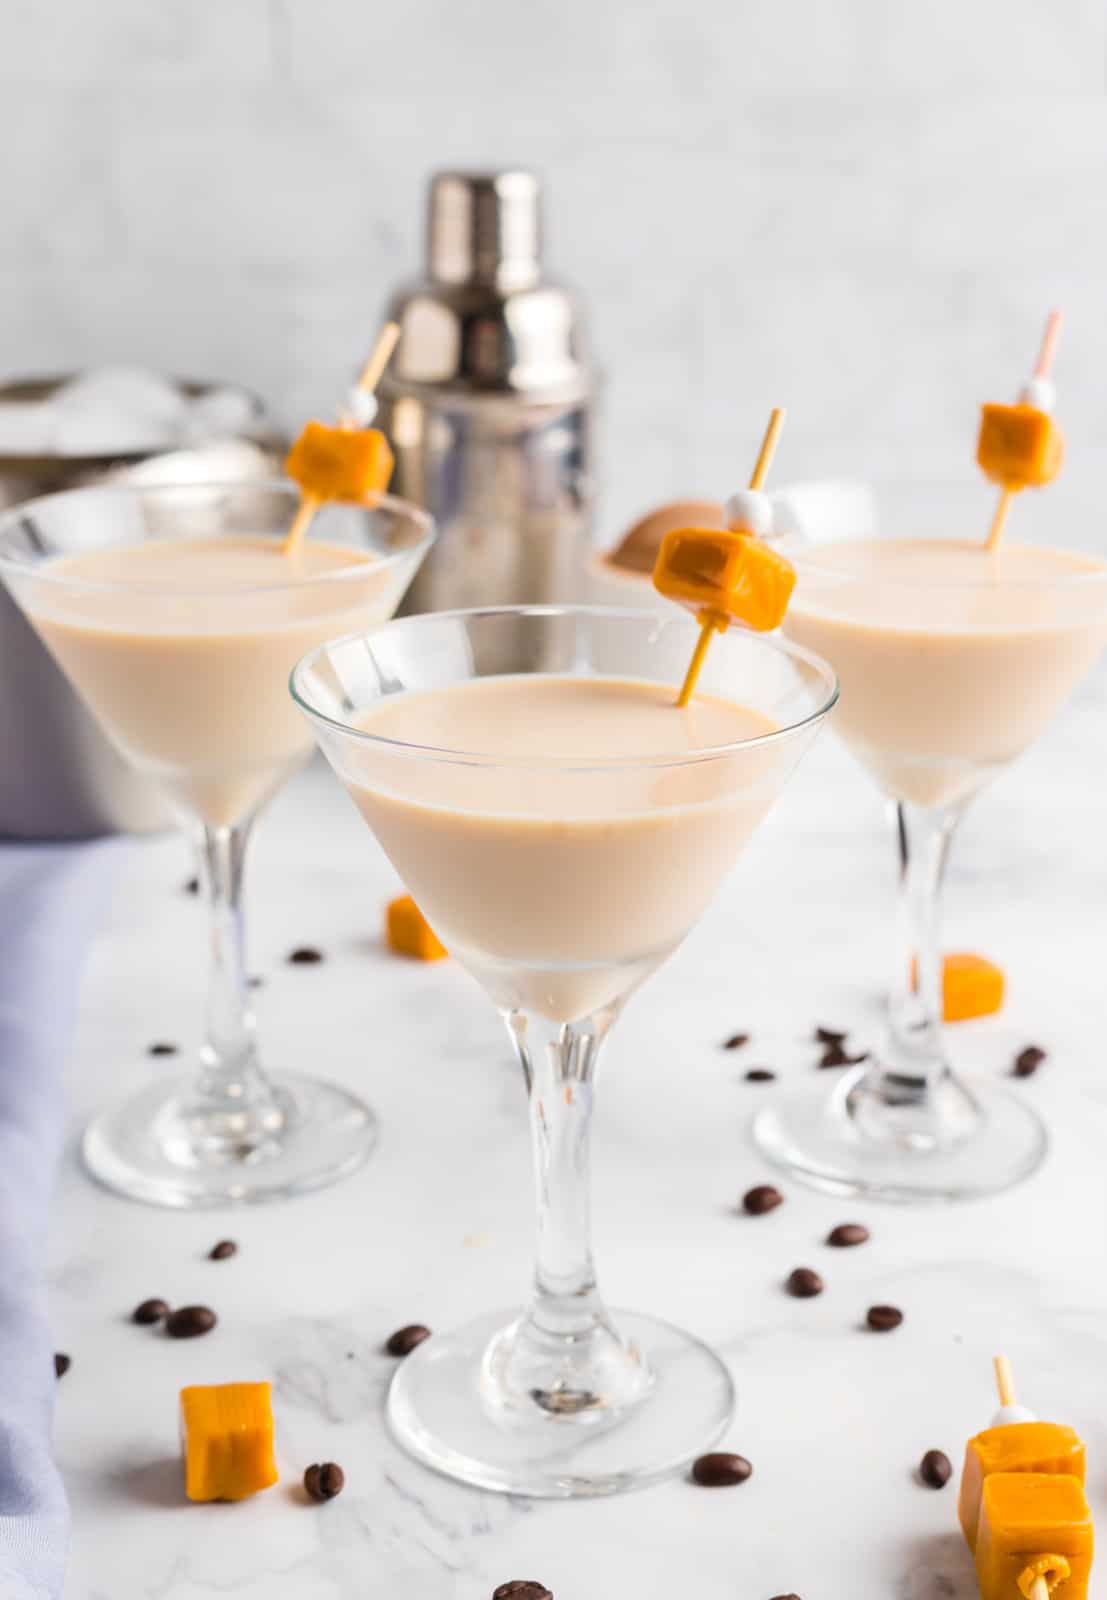 Three Espresso Martinis garnished with caramels